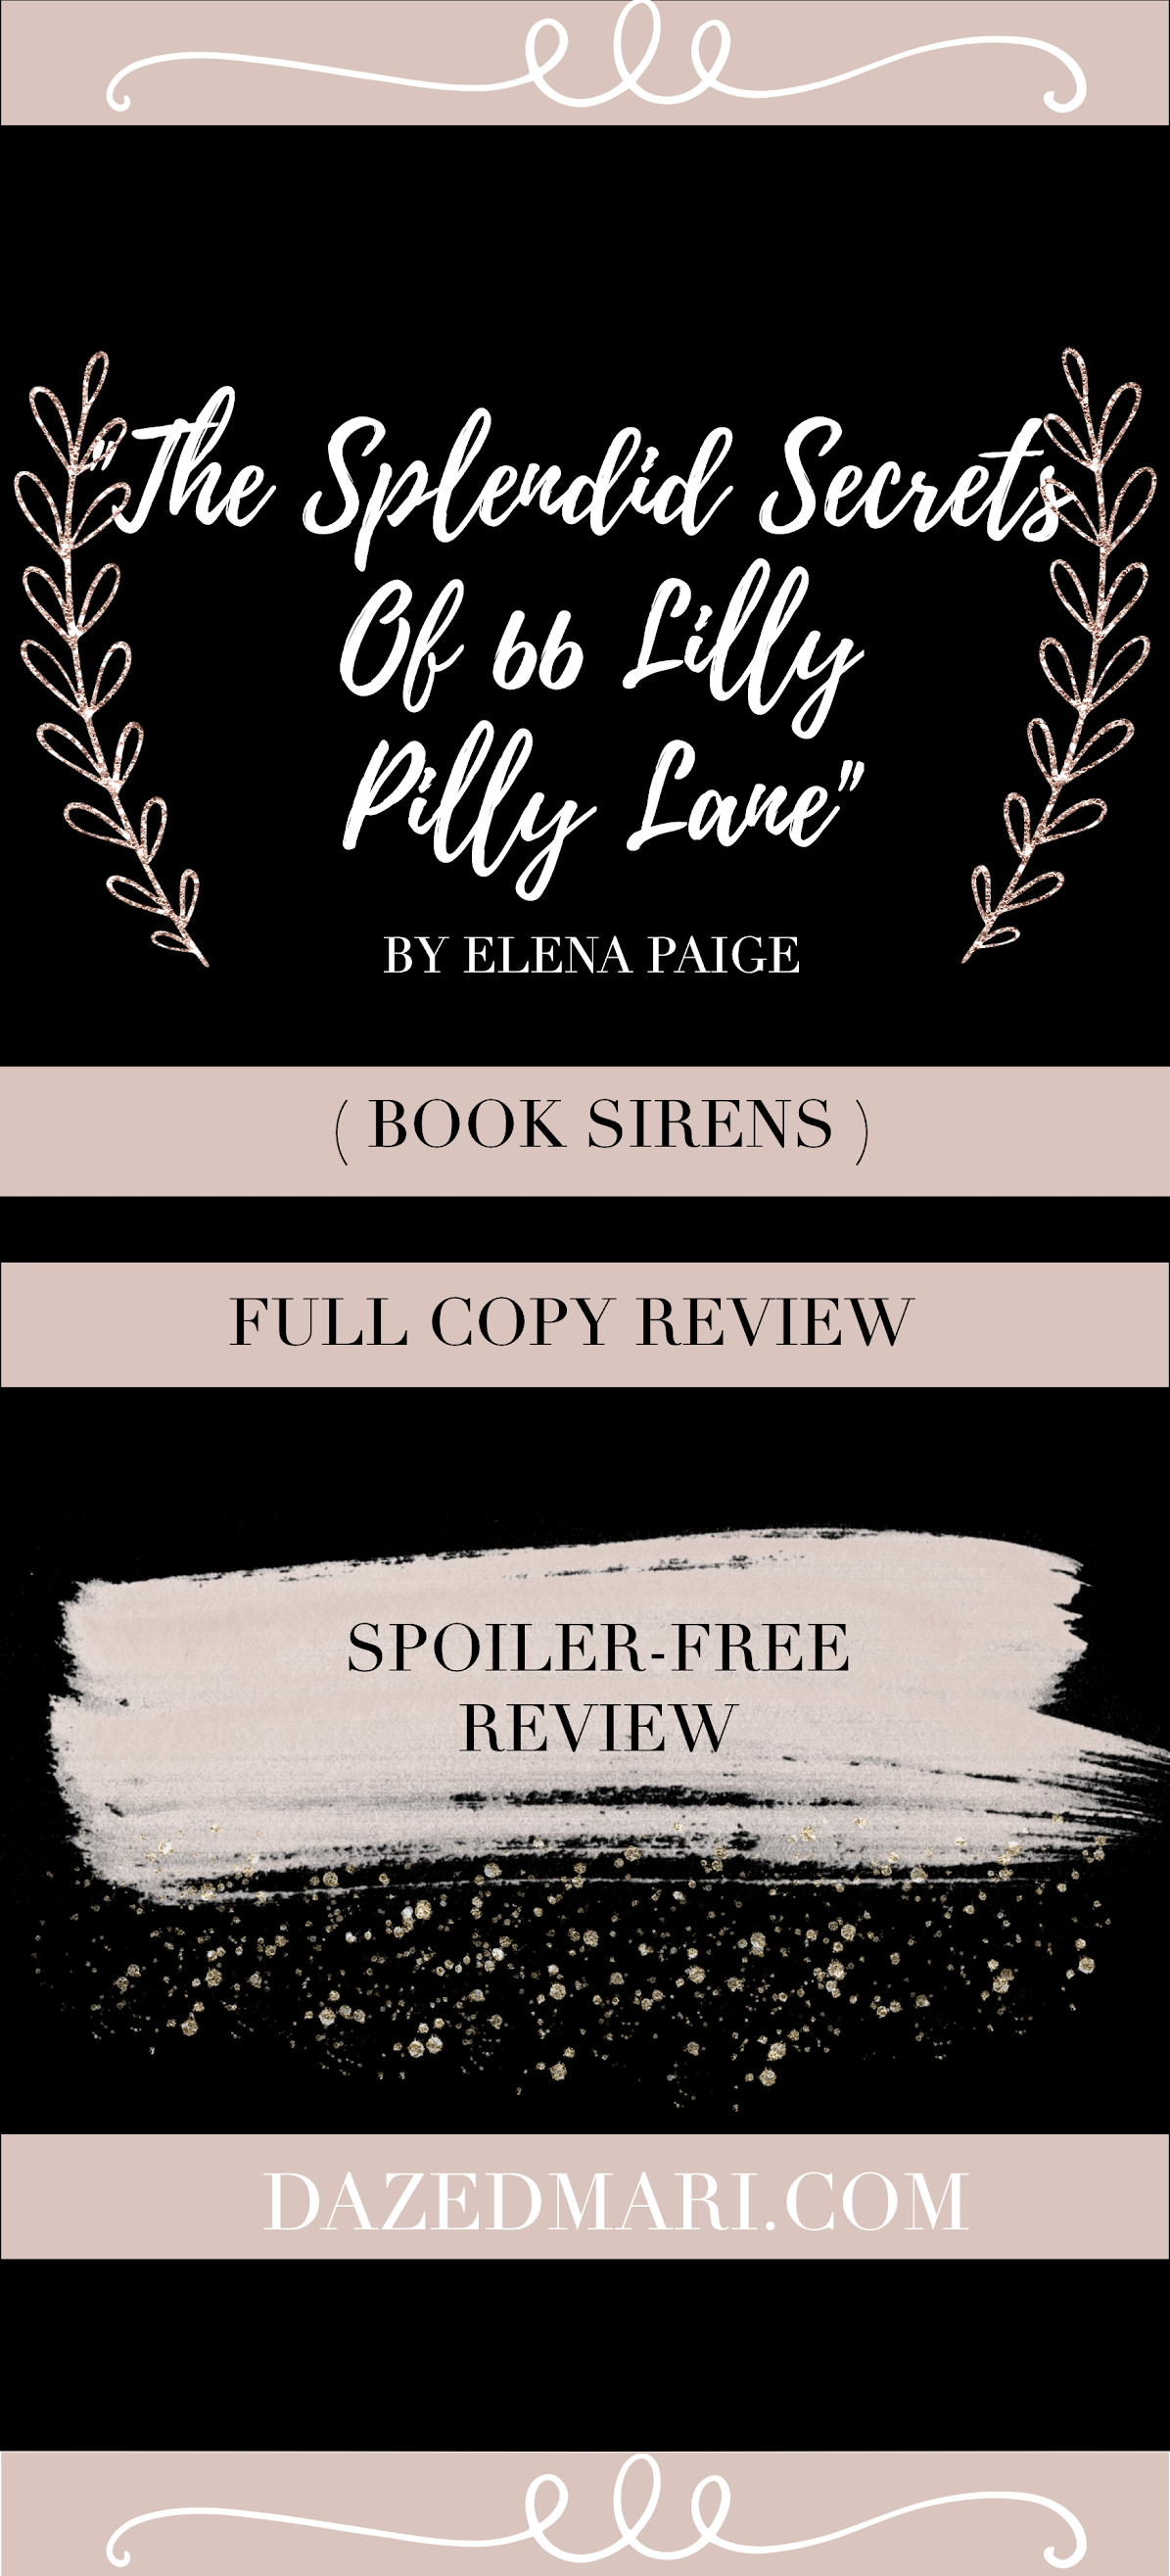 Book Review - The Splendid Secrets of 66 Lilly Pilly Lane by Elena Paige #BookSirens